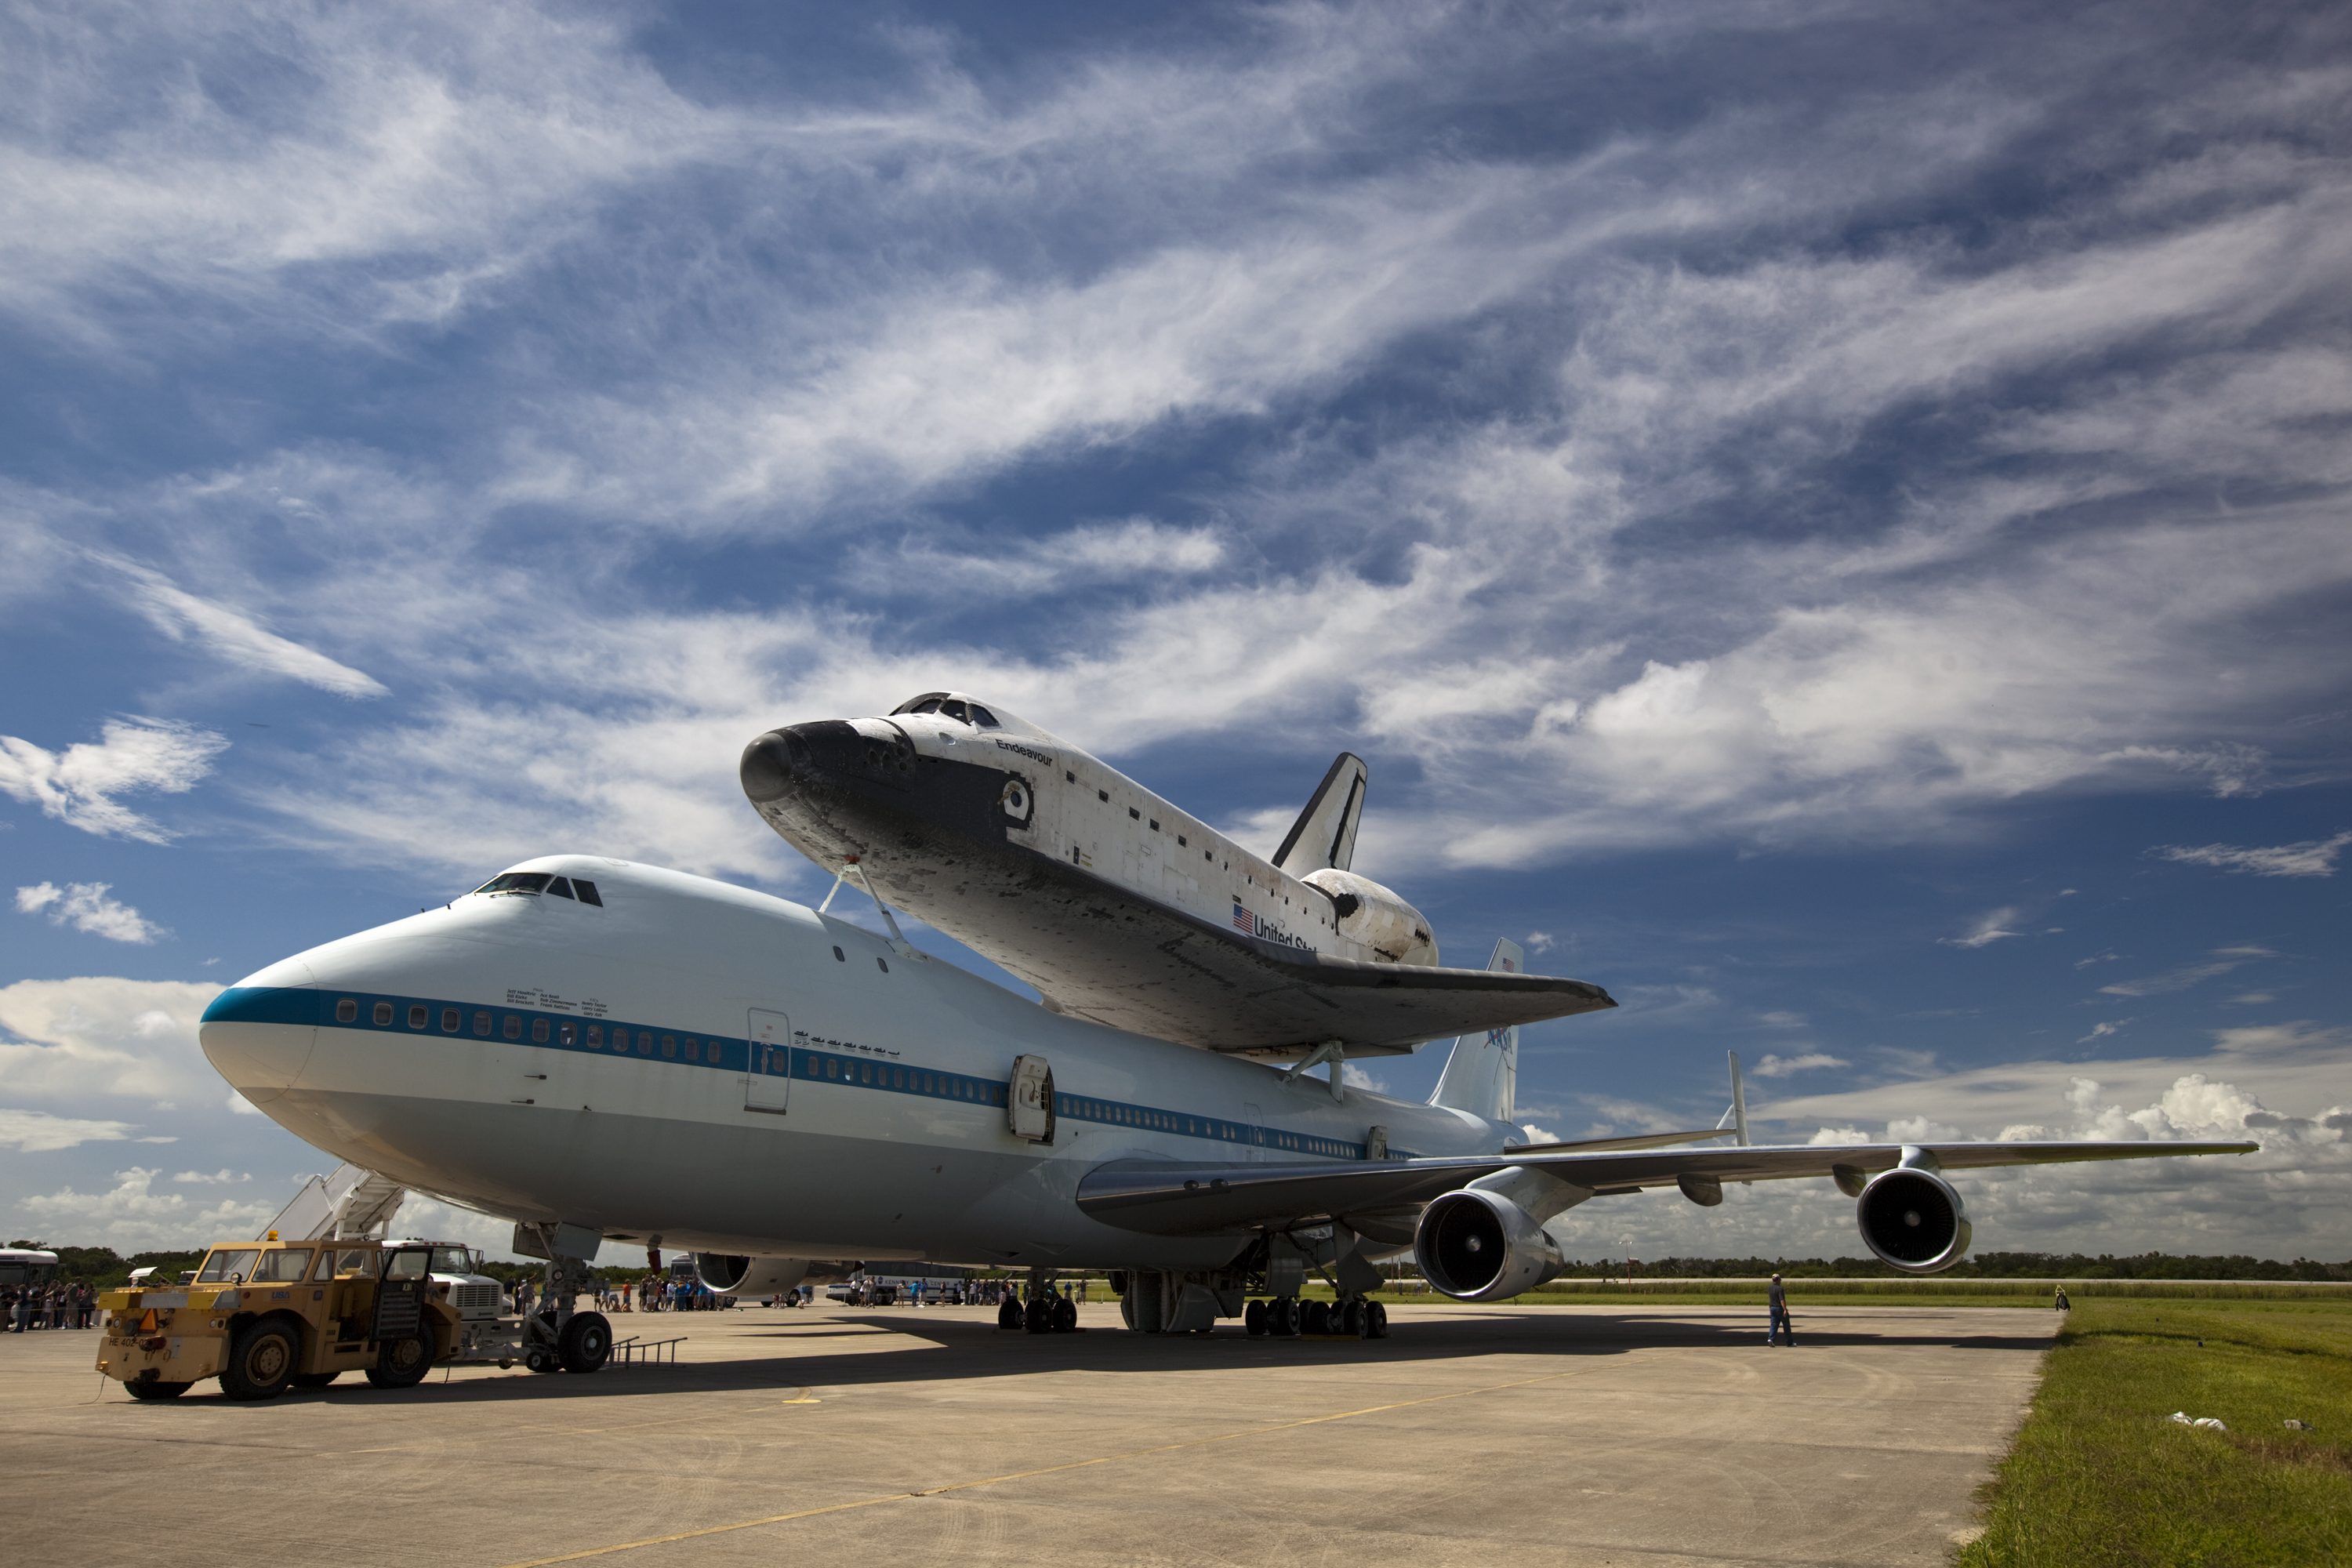 How to Watch Space Shuttle Endeavour's Ferry Flight Online Today